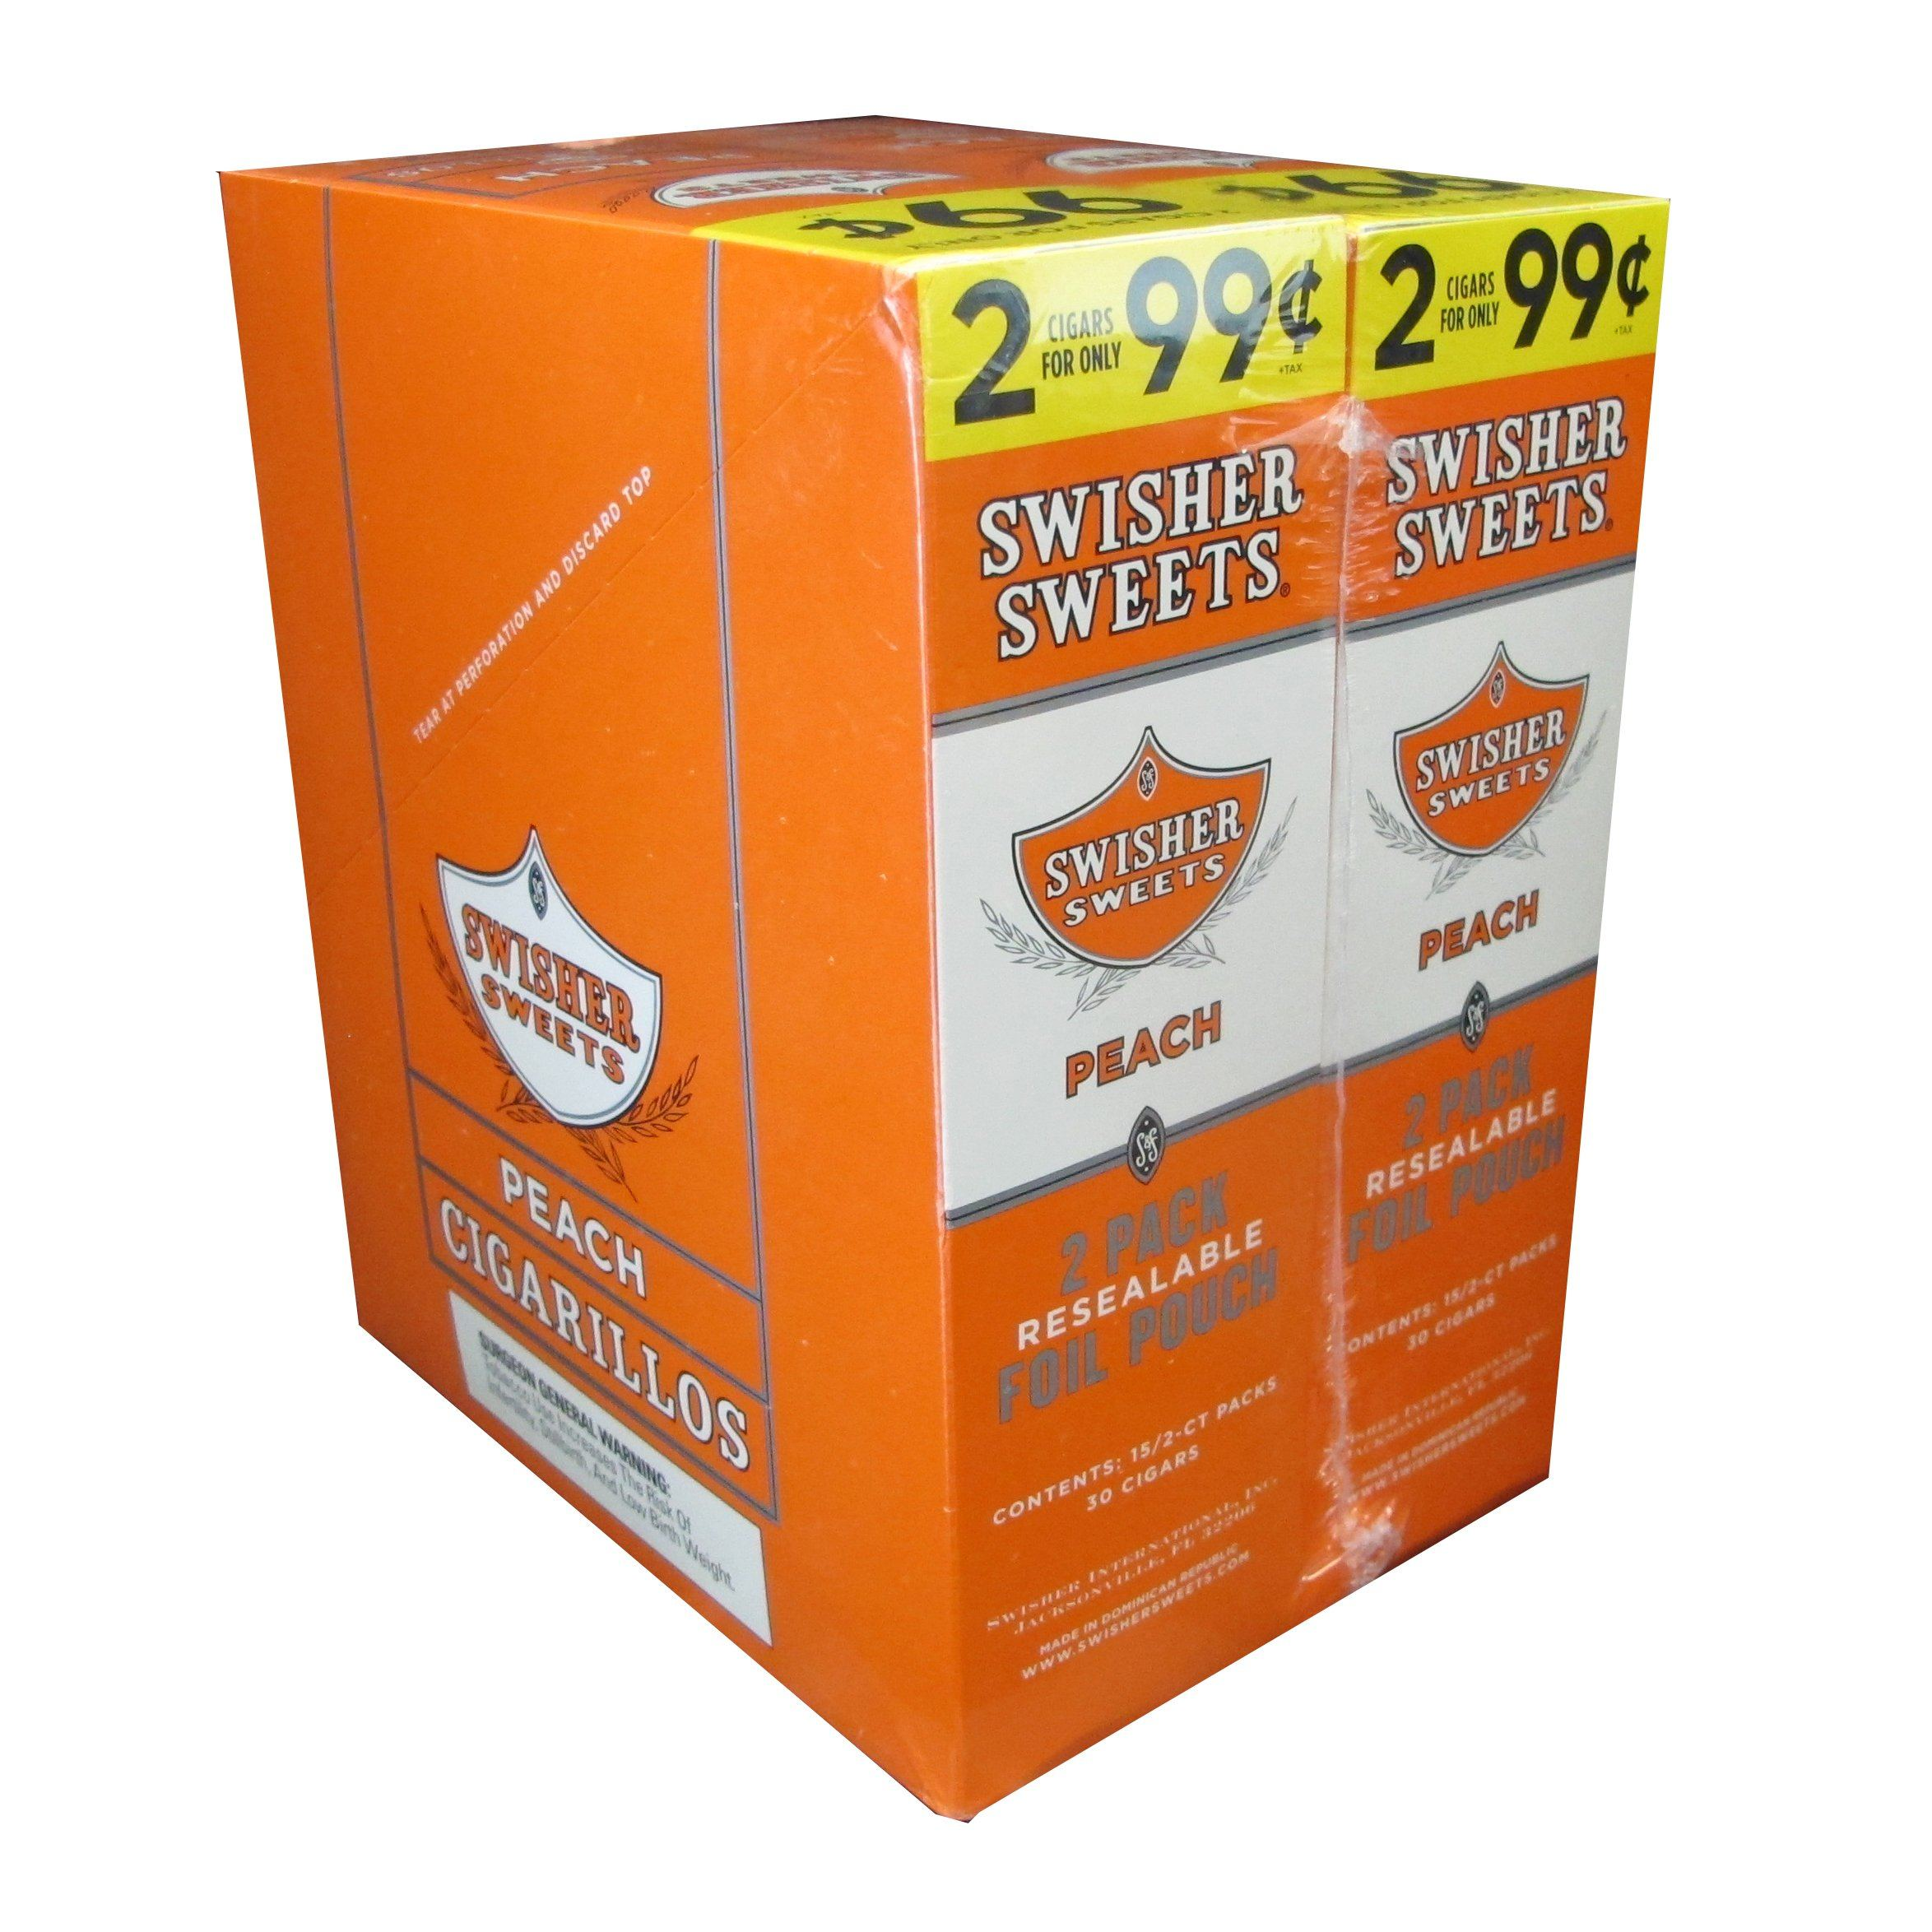 Swisher Sweets Peach Cigarillos